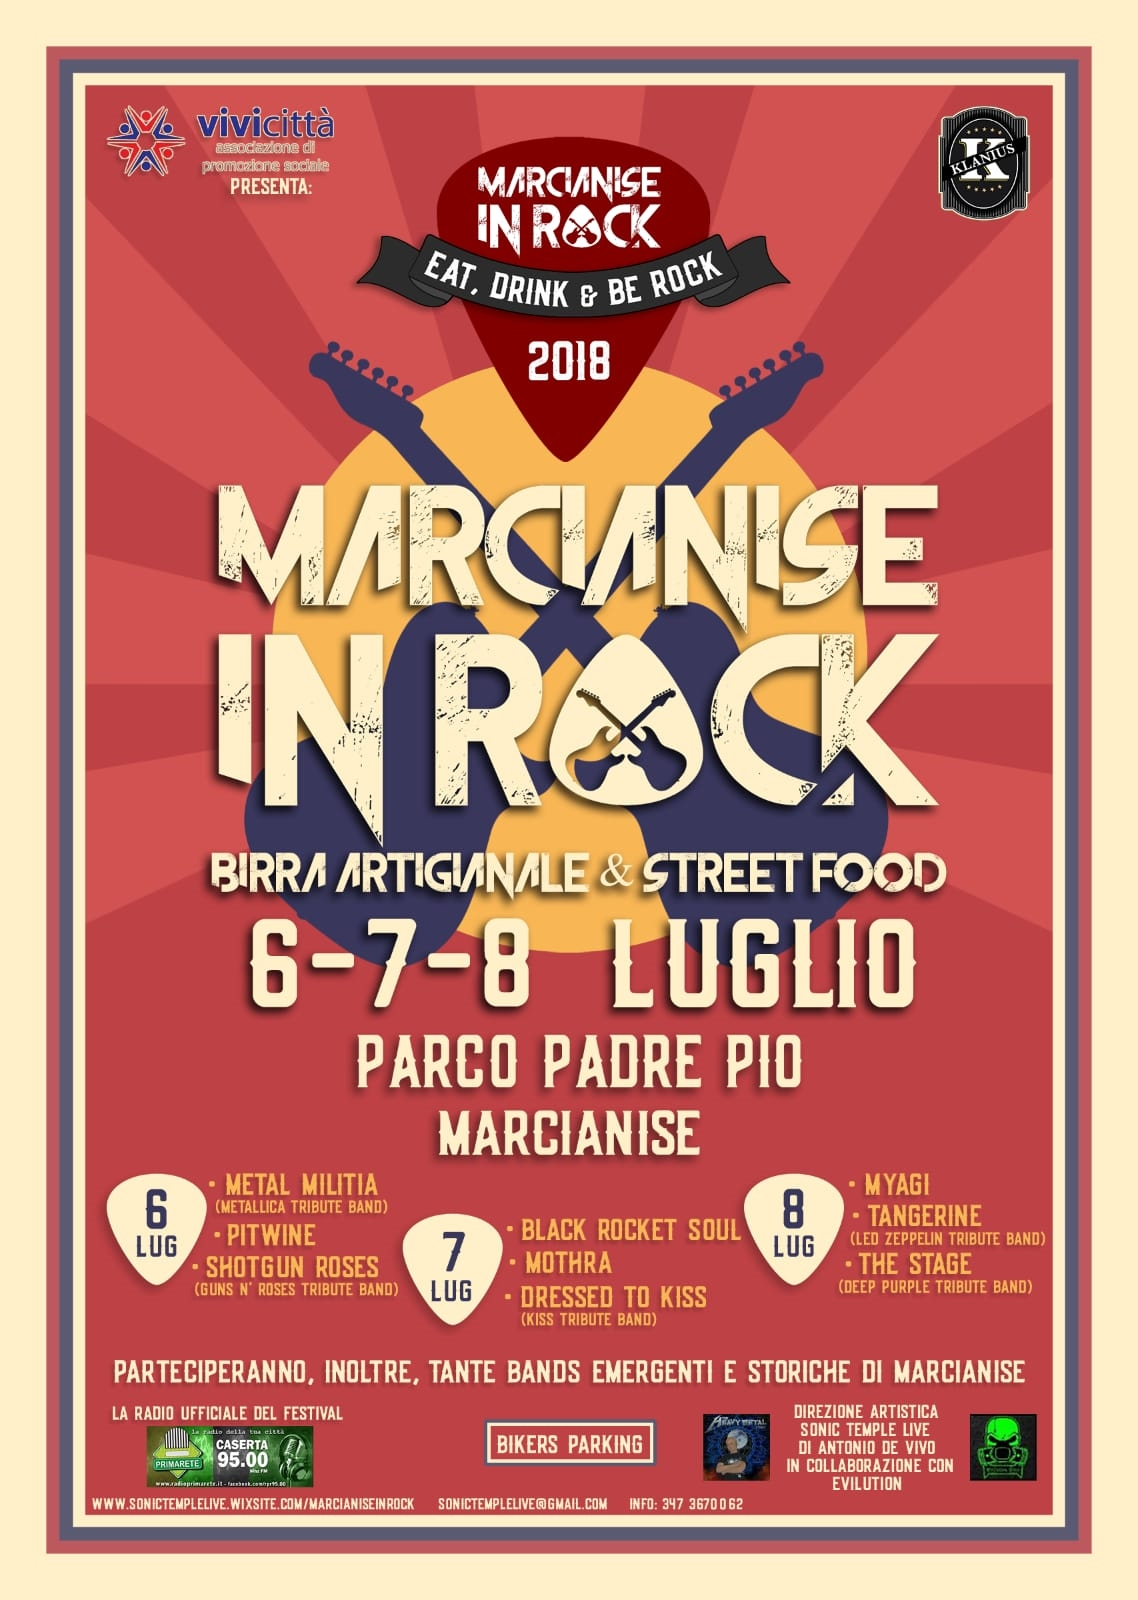 Marcianise-in-Rock-2018-1.jpg